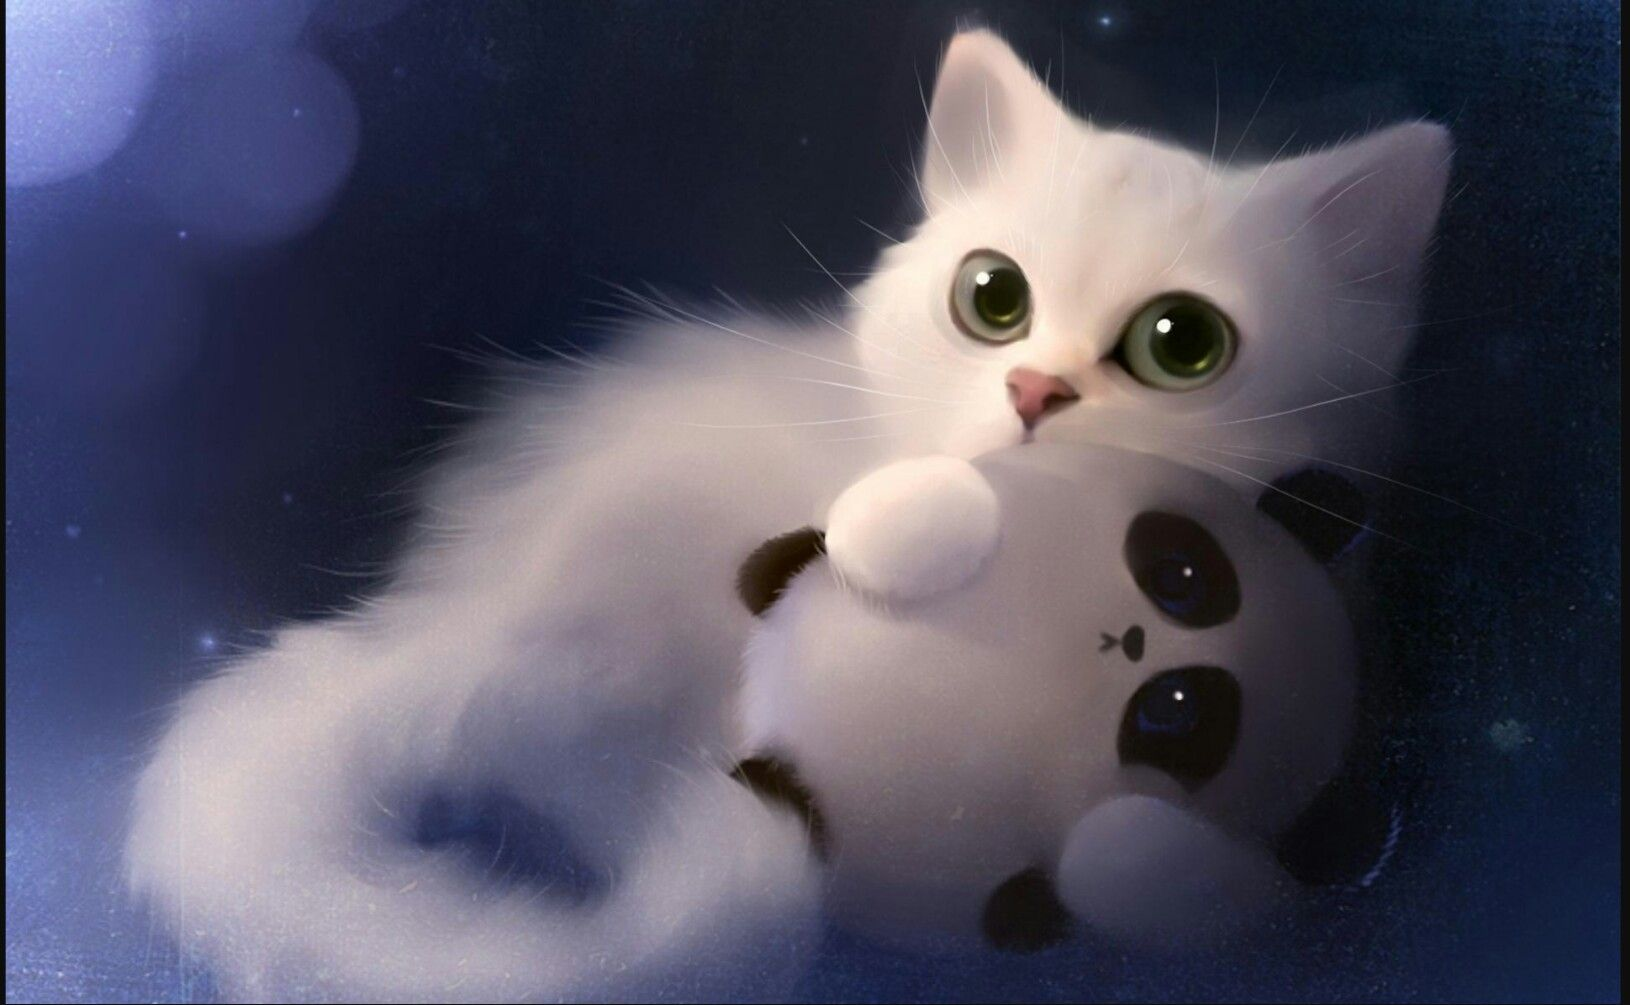 She Looks As Much Like An Anime Kitten As Her Snuggle Toy Cute Anime Cat Cat Art Cat Artwork